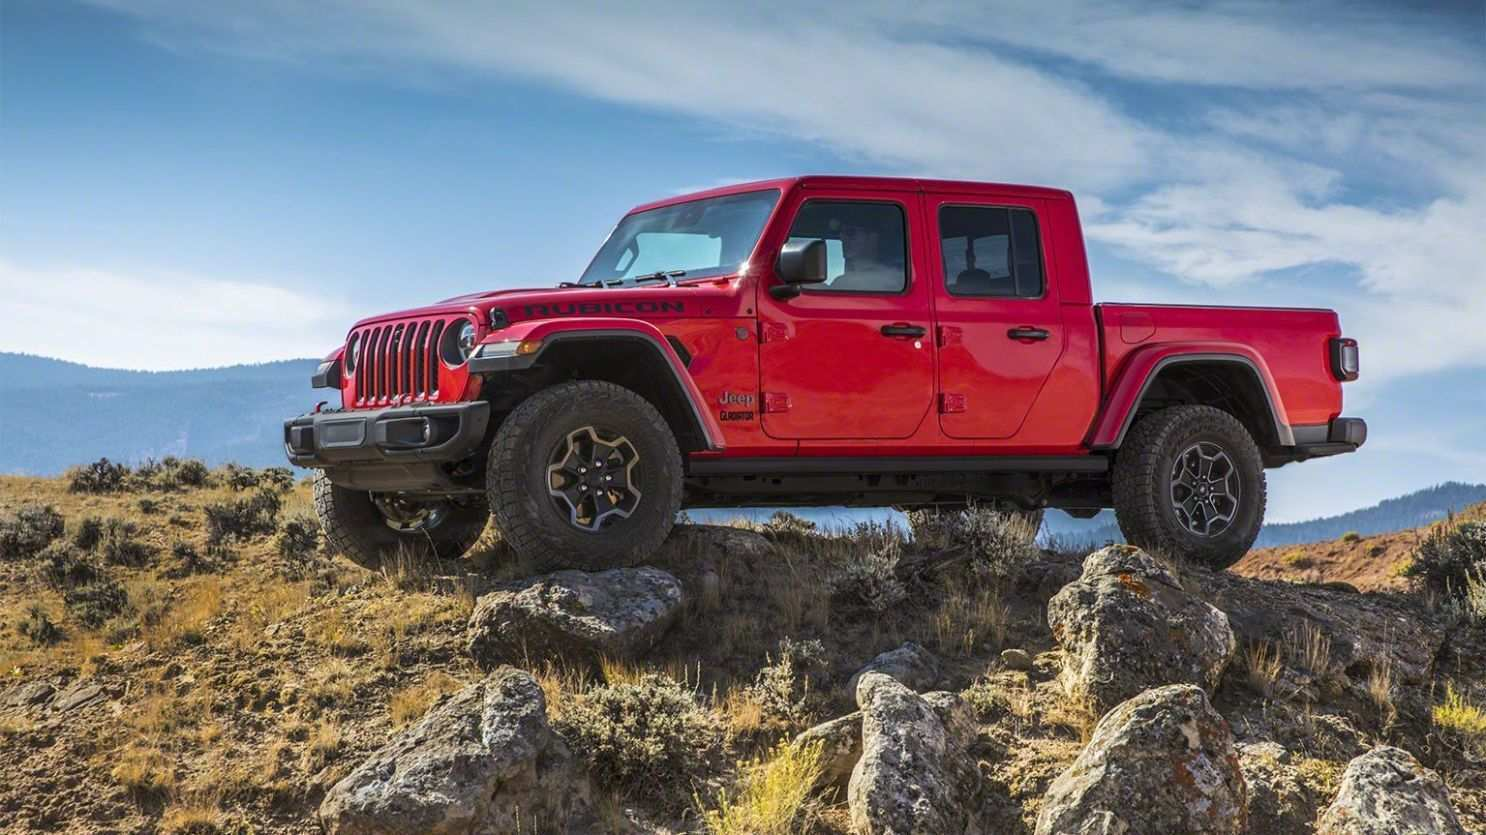 69 The Best Jeep Comanche 2020 Redesign And Concept